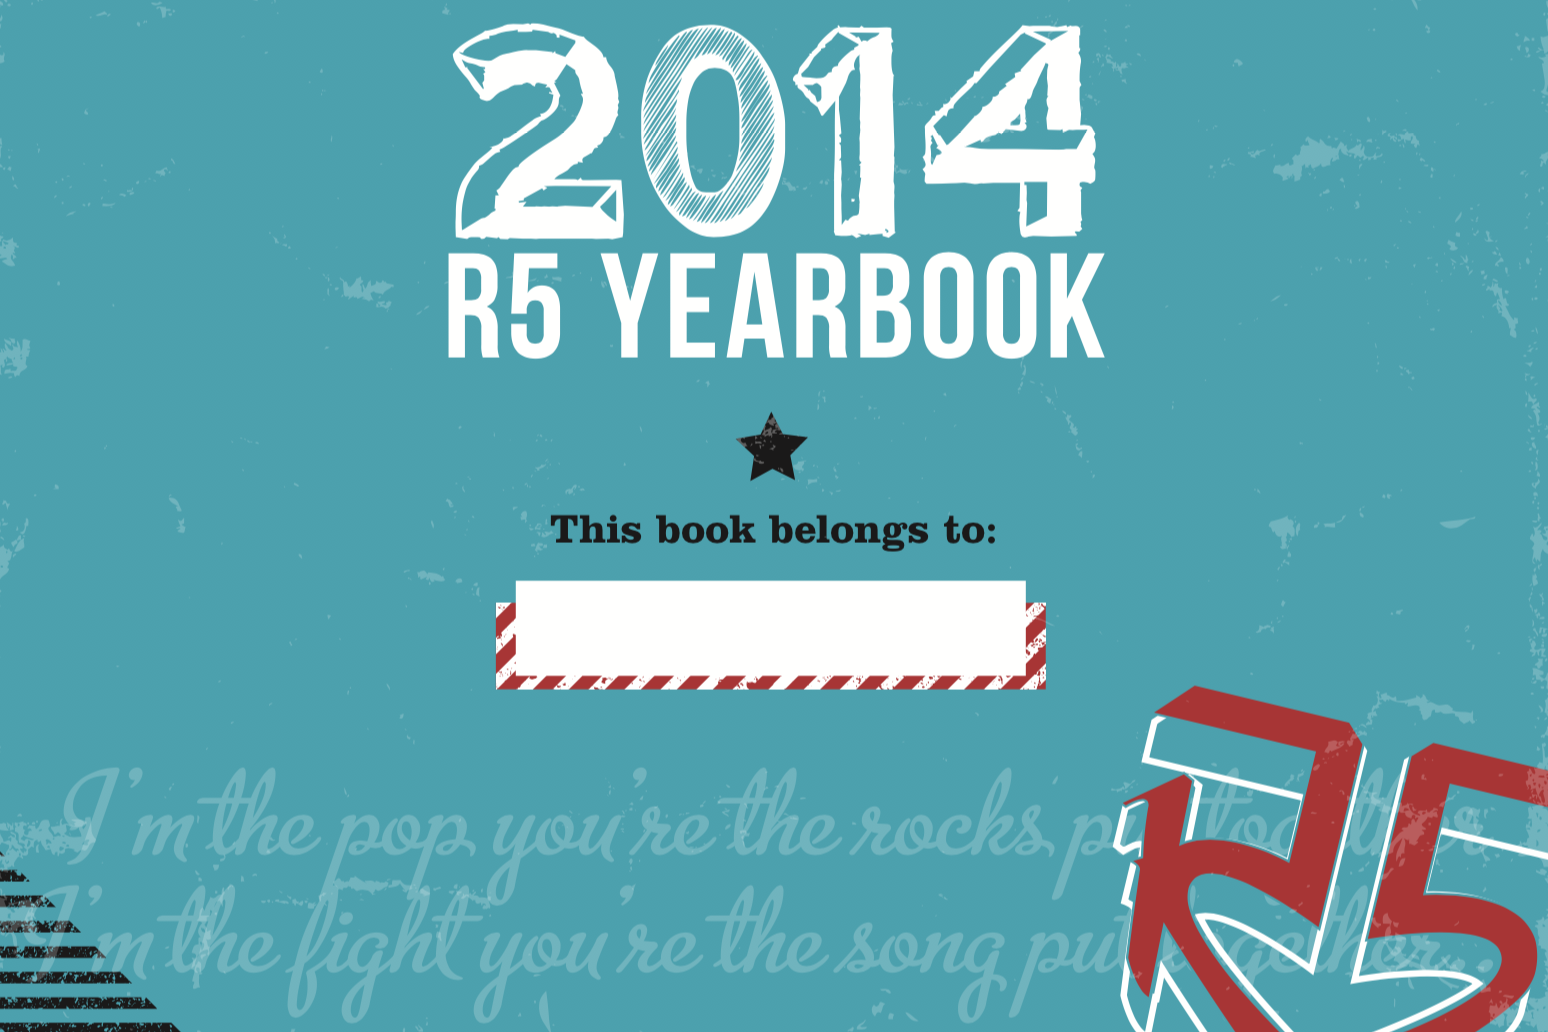 R5 Yearbook